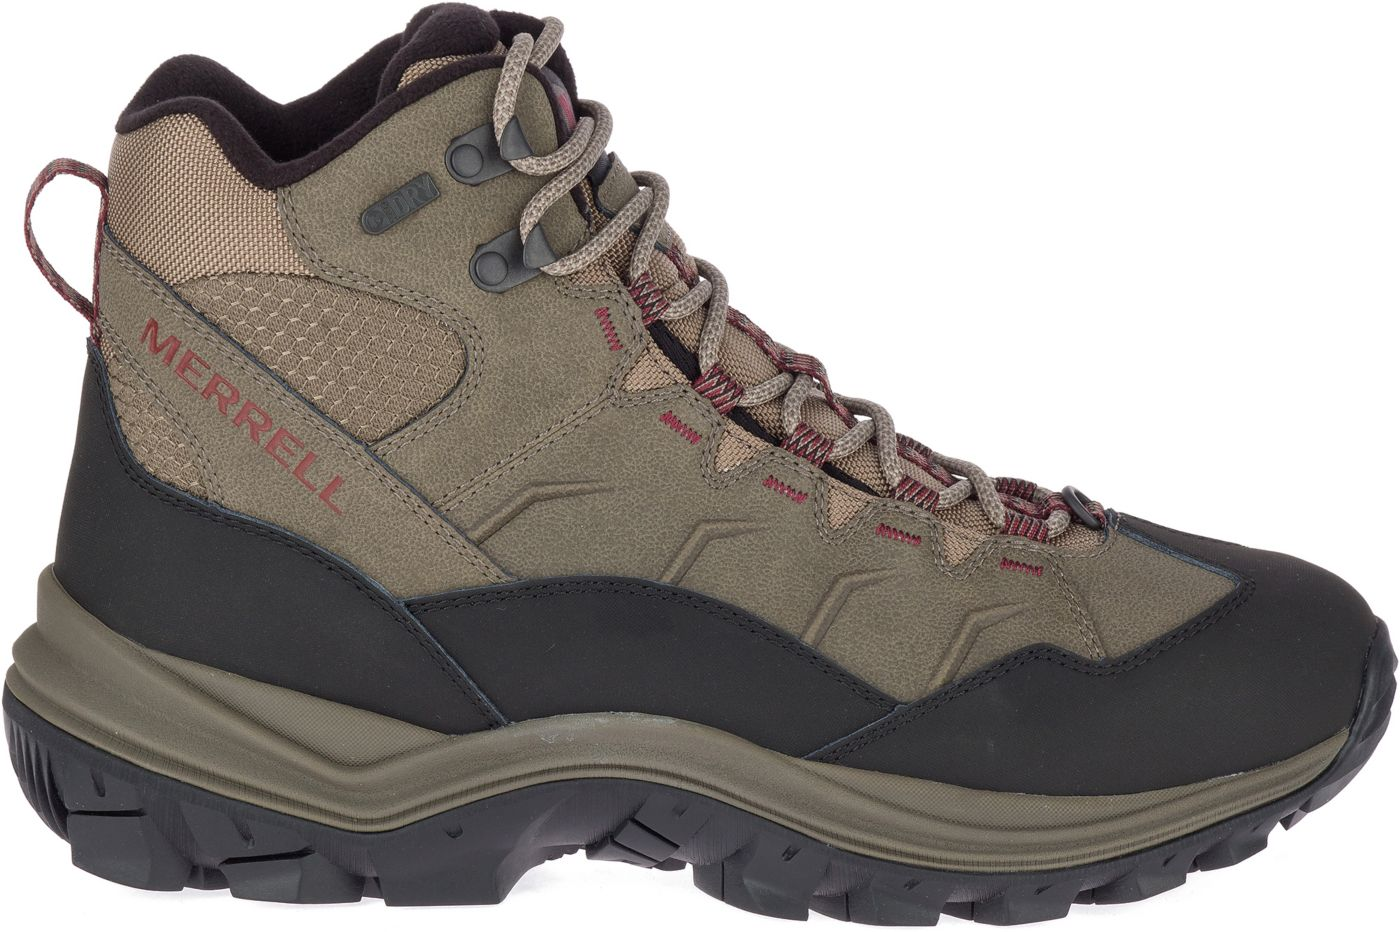 Merrell Men's Thermo Chill Mid 200g Waterproof Hiking Boots